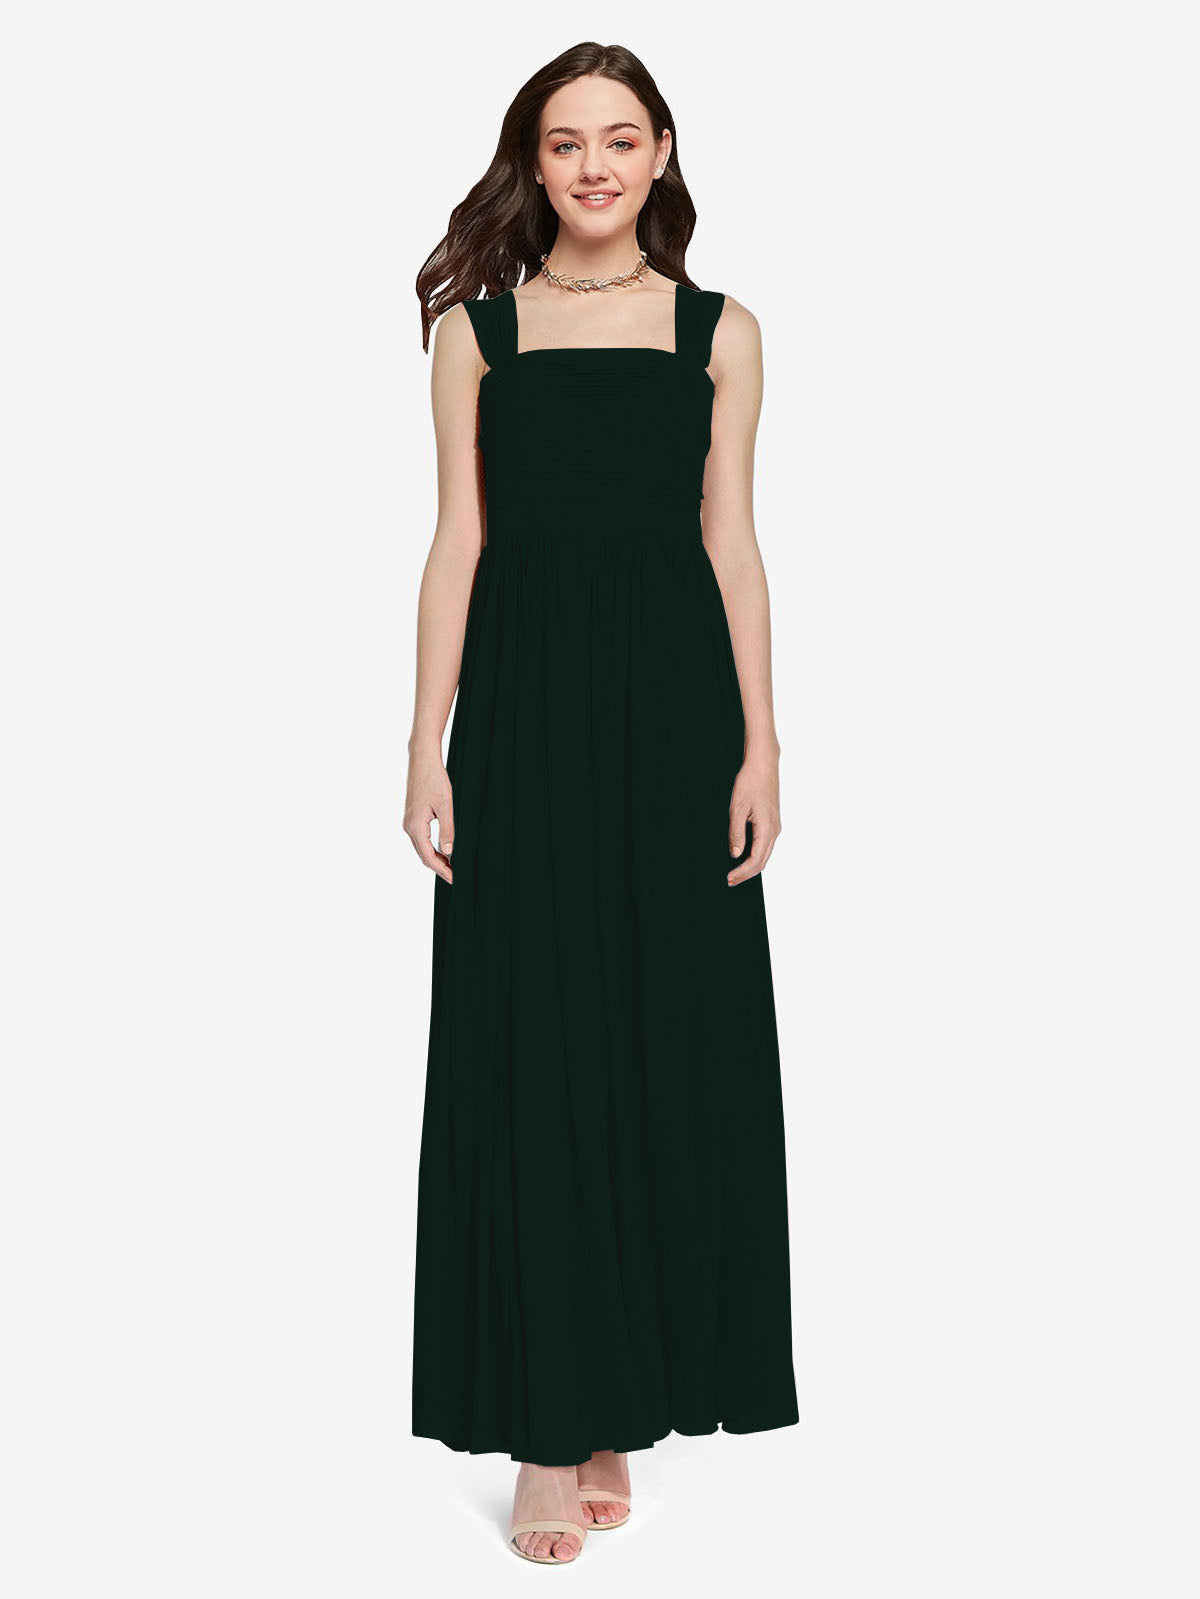 Long A-Line Square Sleeveless Ever Green Chiffon Bridesmaid Dress Aldridge